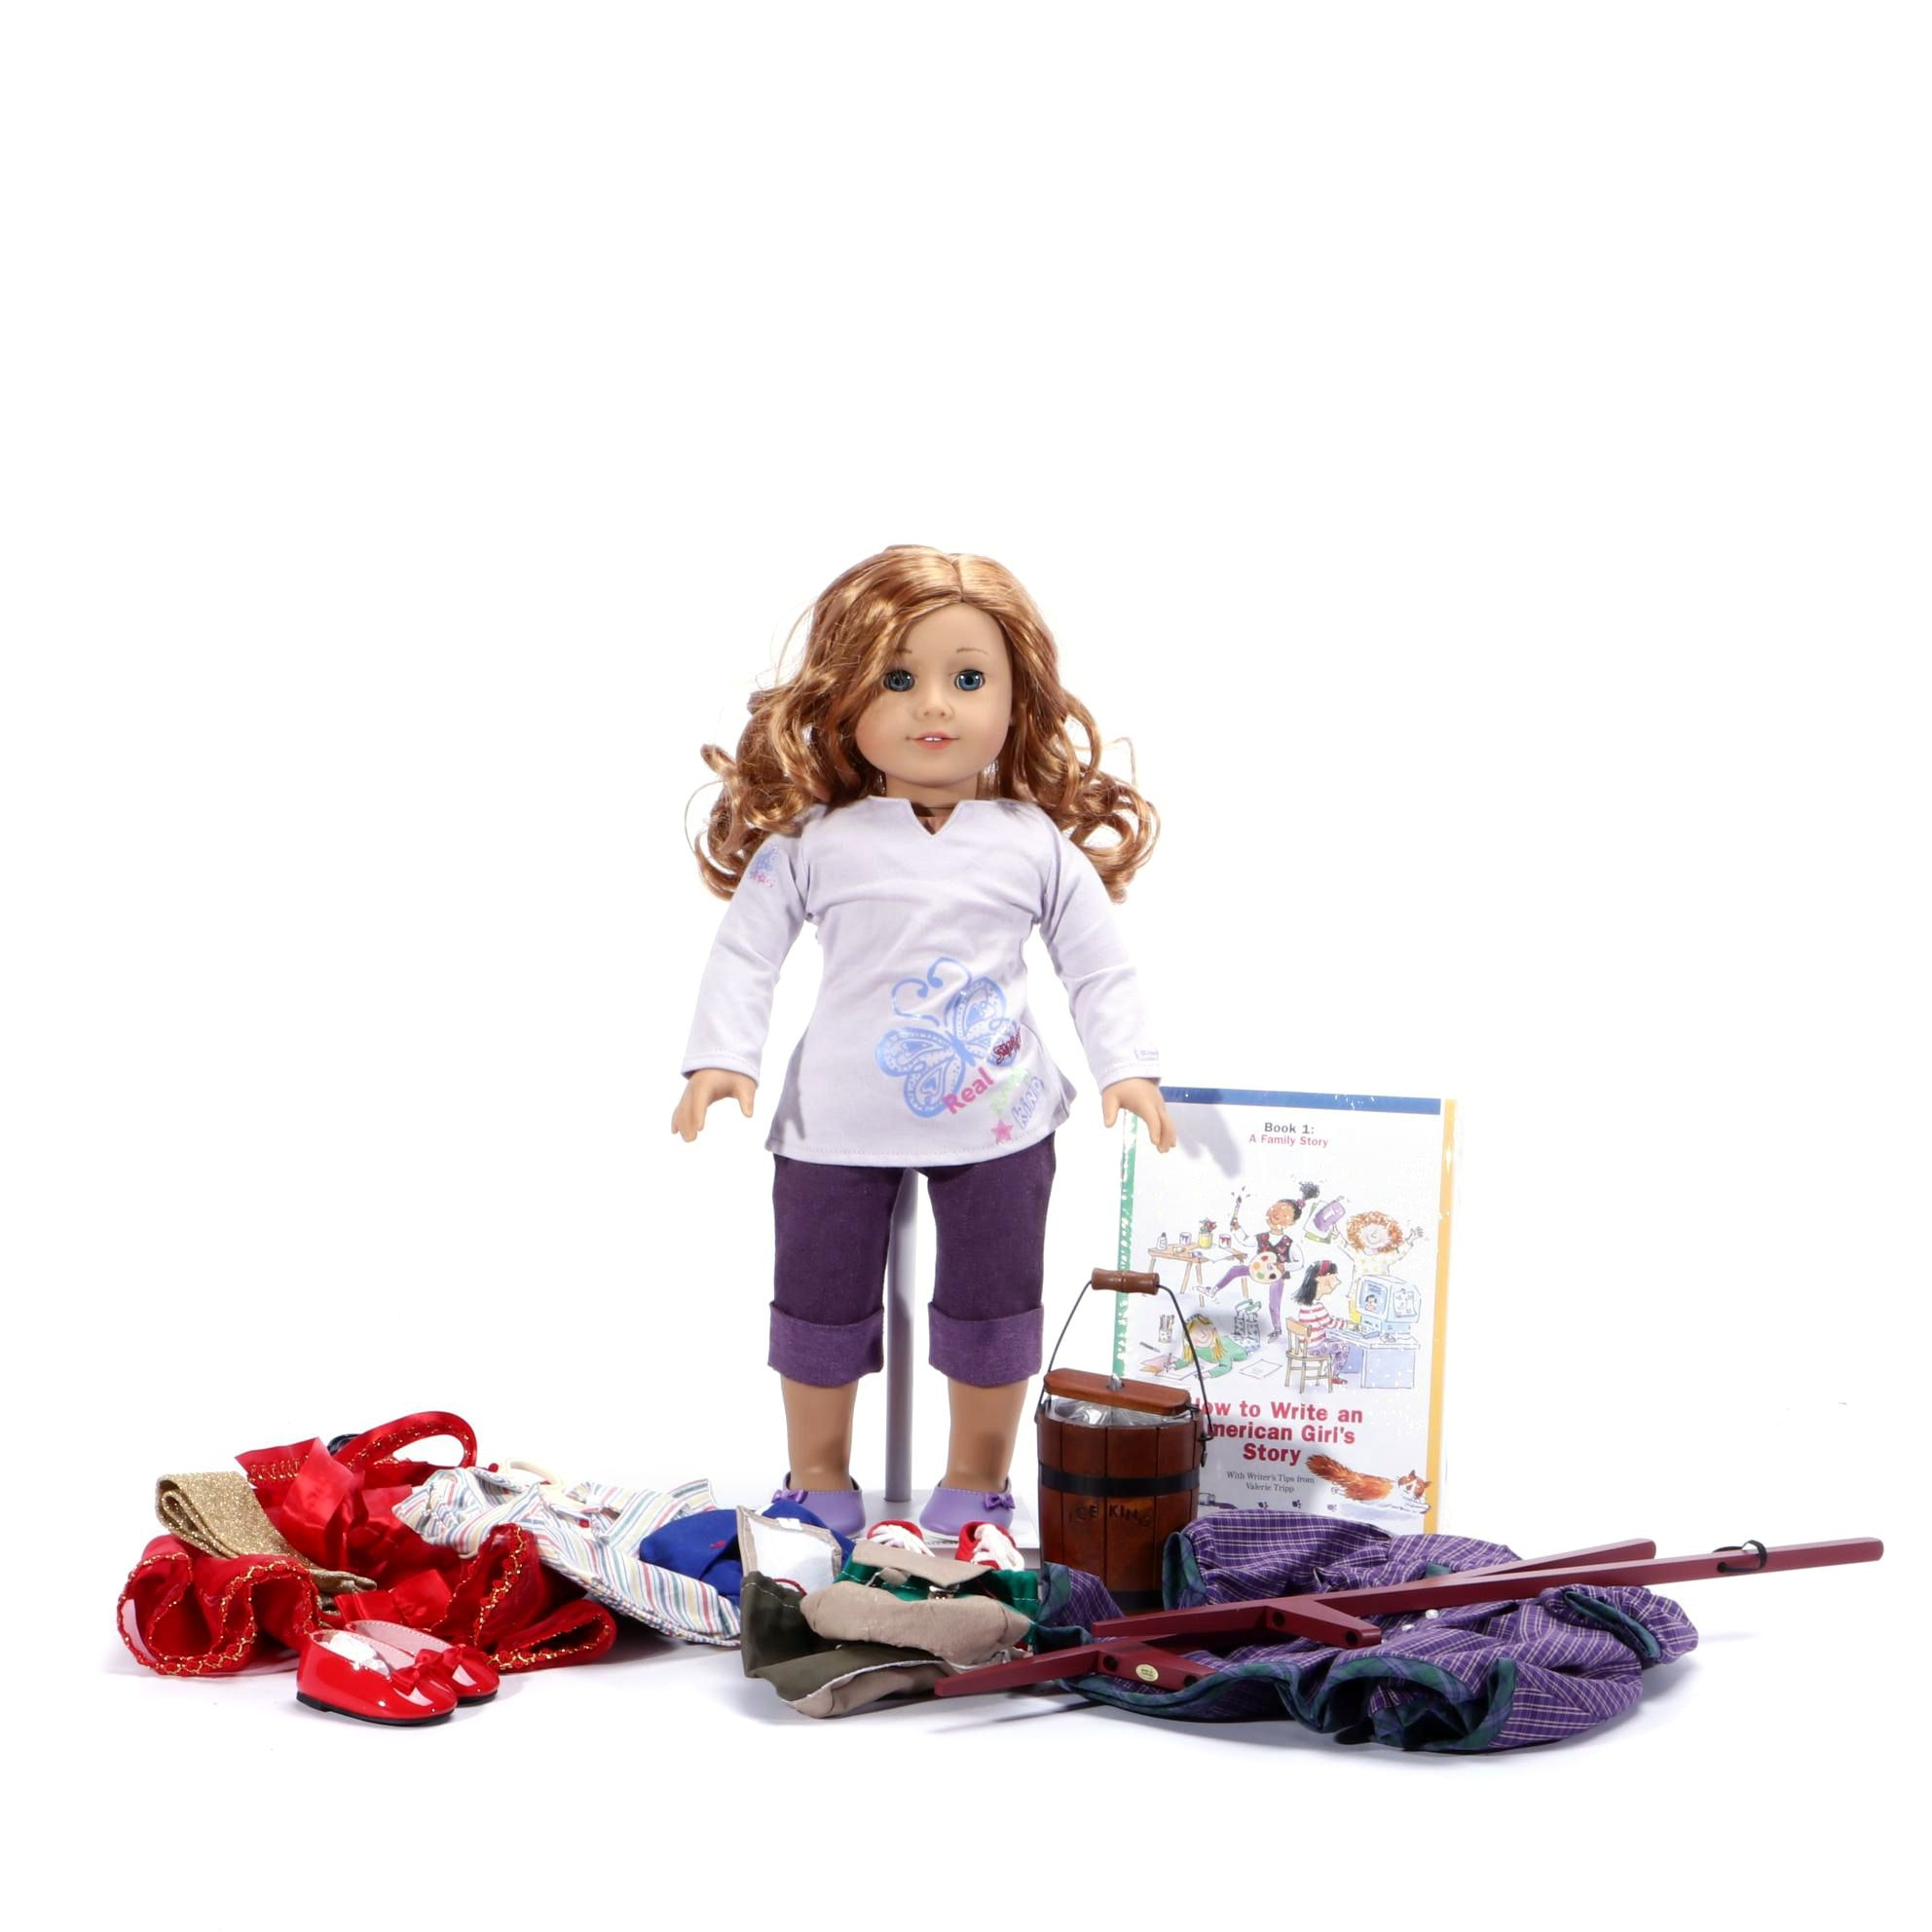 """""""Just Like You"""" American Girl Doll and Accessories"""